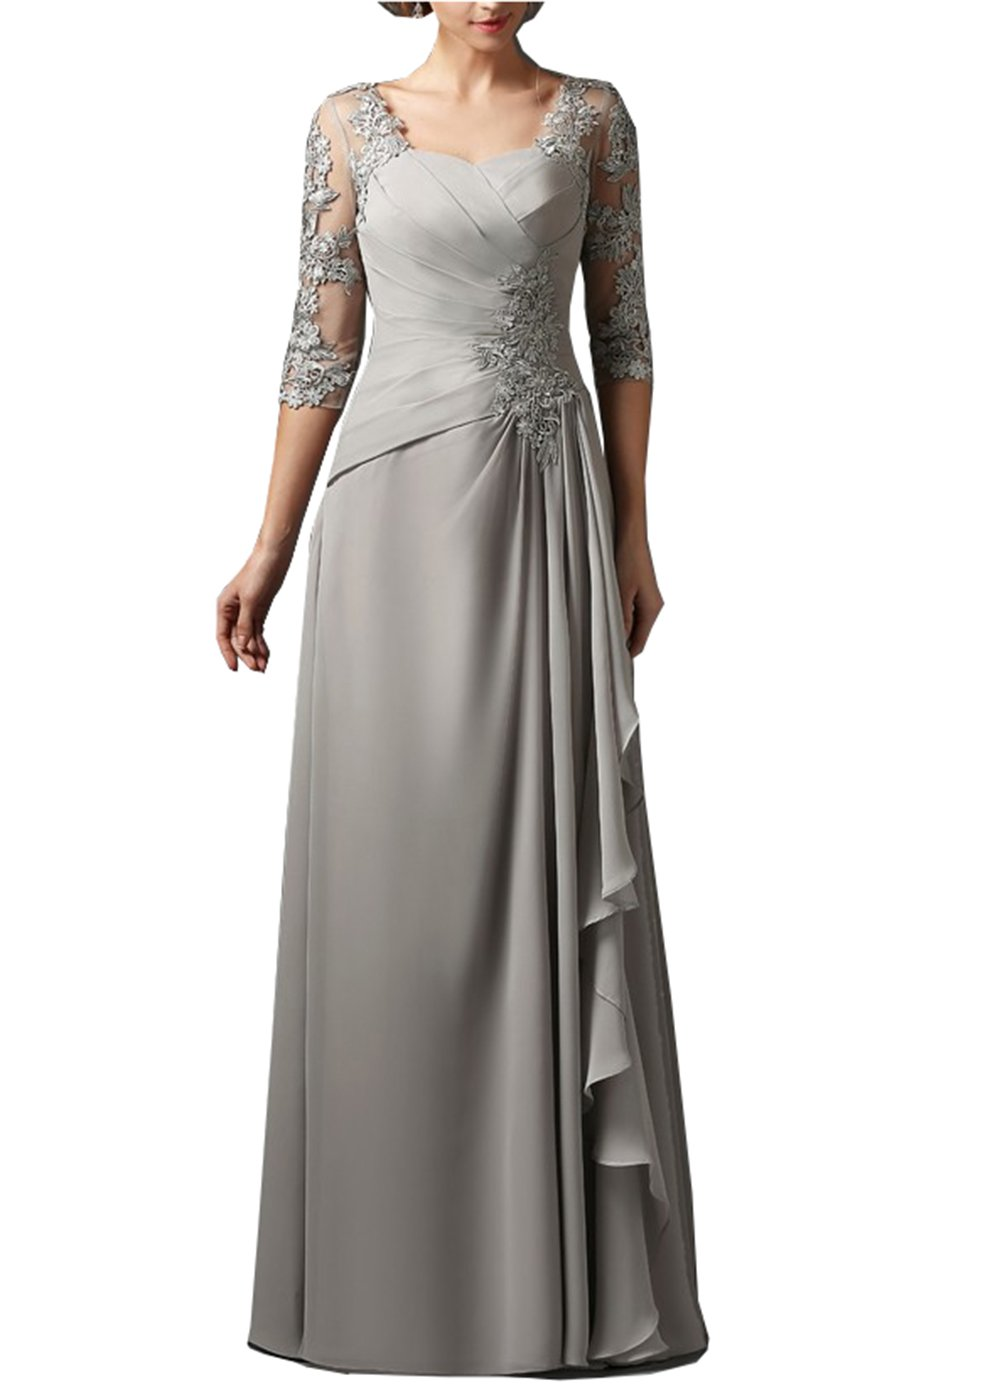 bb2203cc90 Silver Grey Lace Mother Of The Bride Dresses - Gomes Weine AG